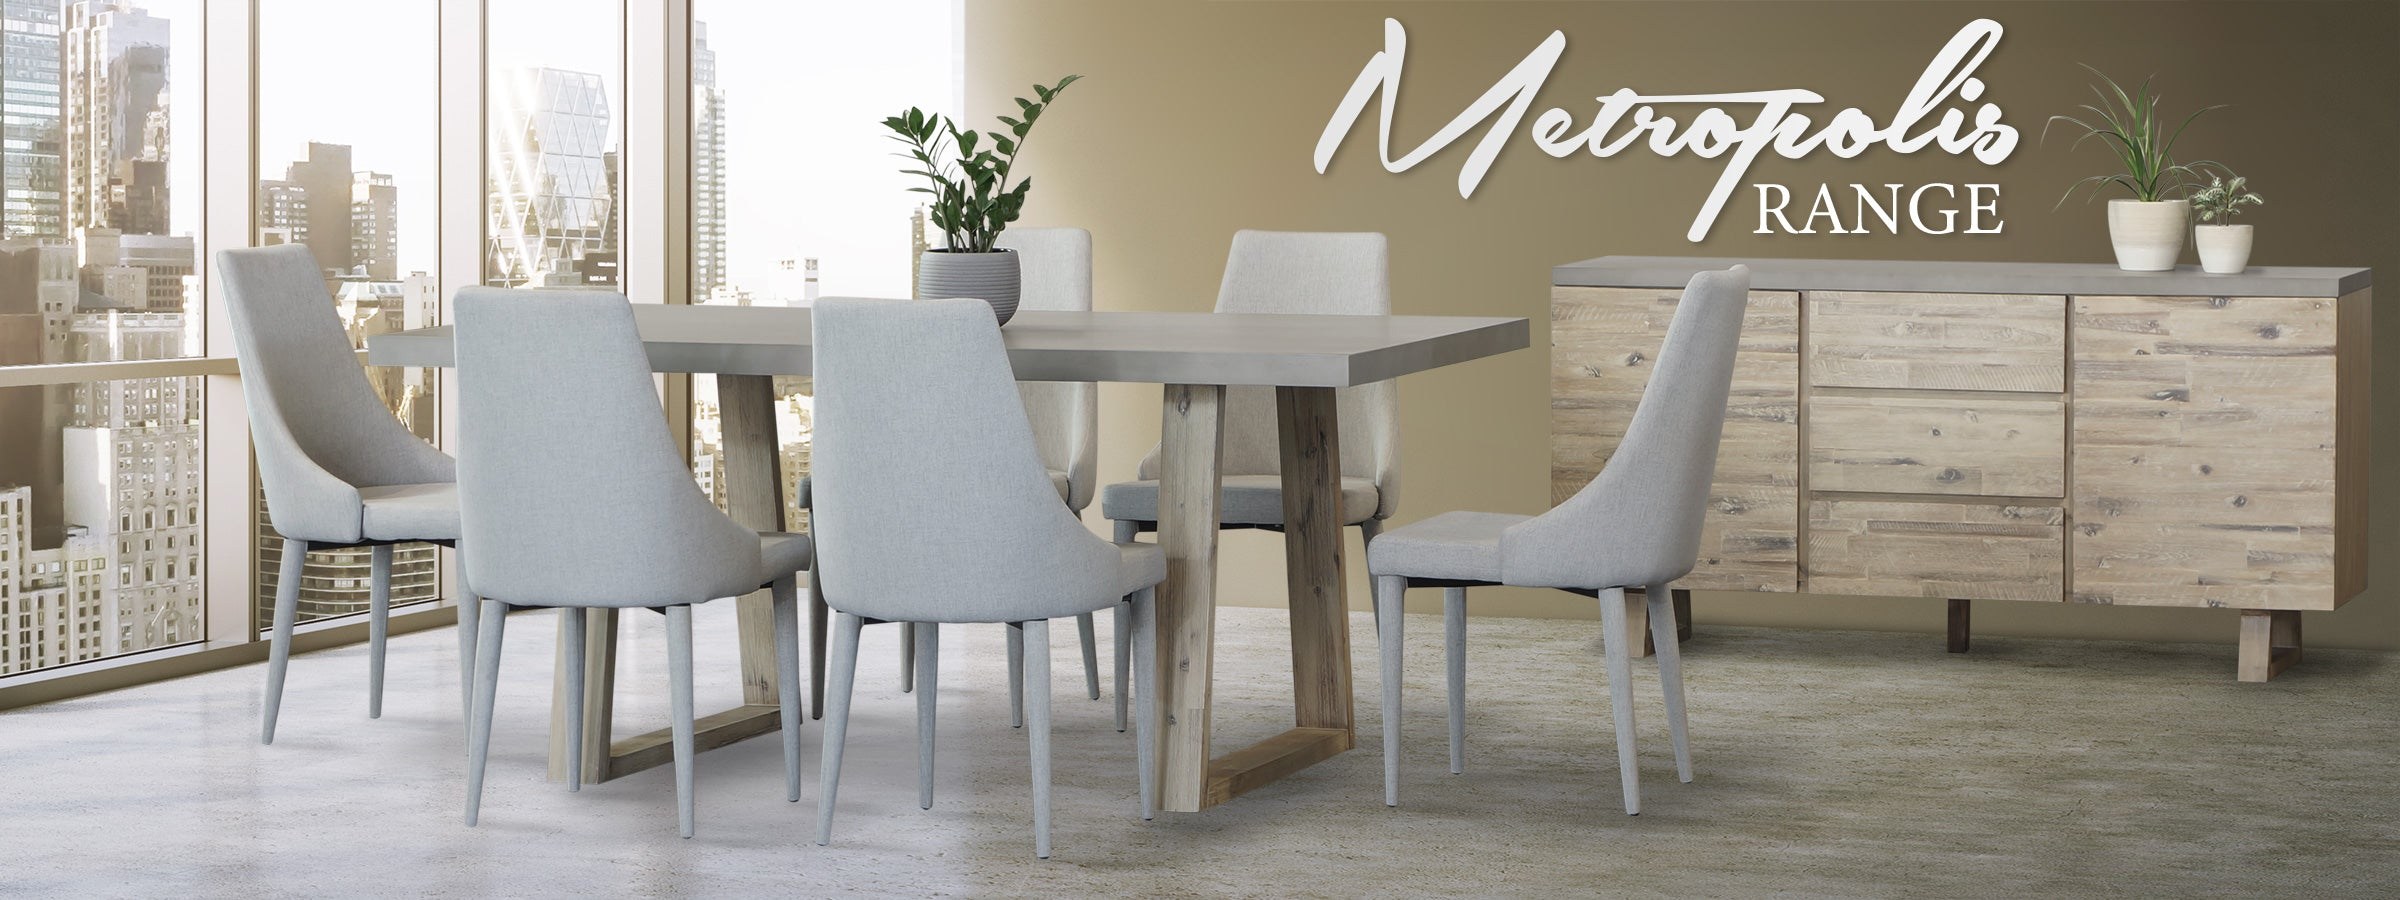 Metropolis Range, Brisbane Furniture